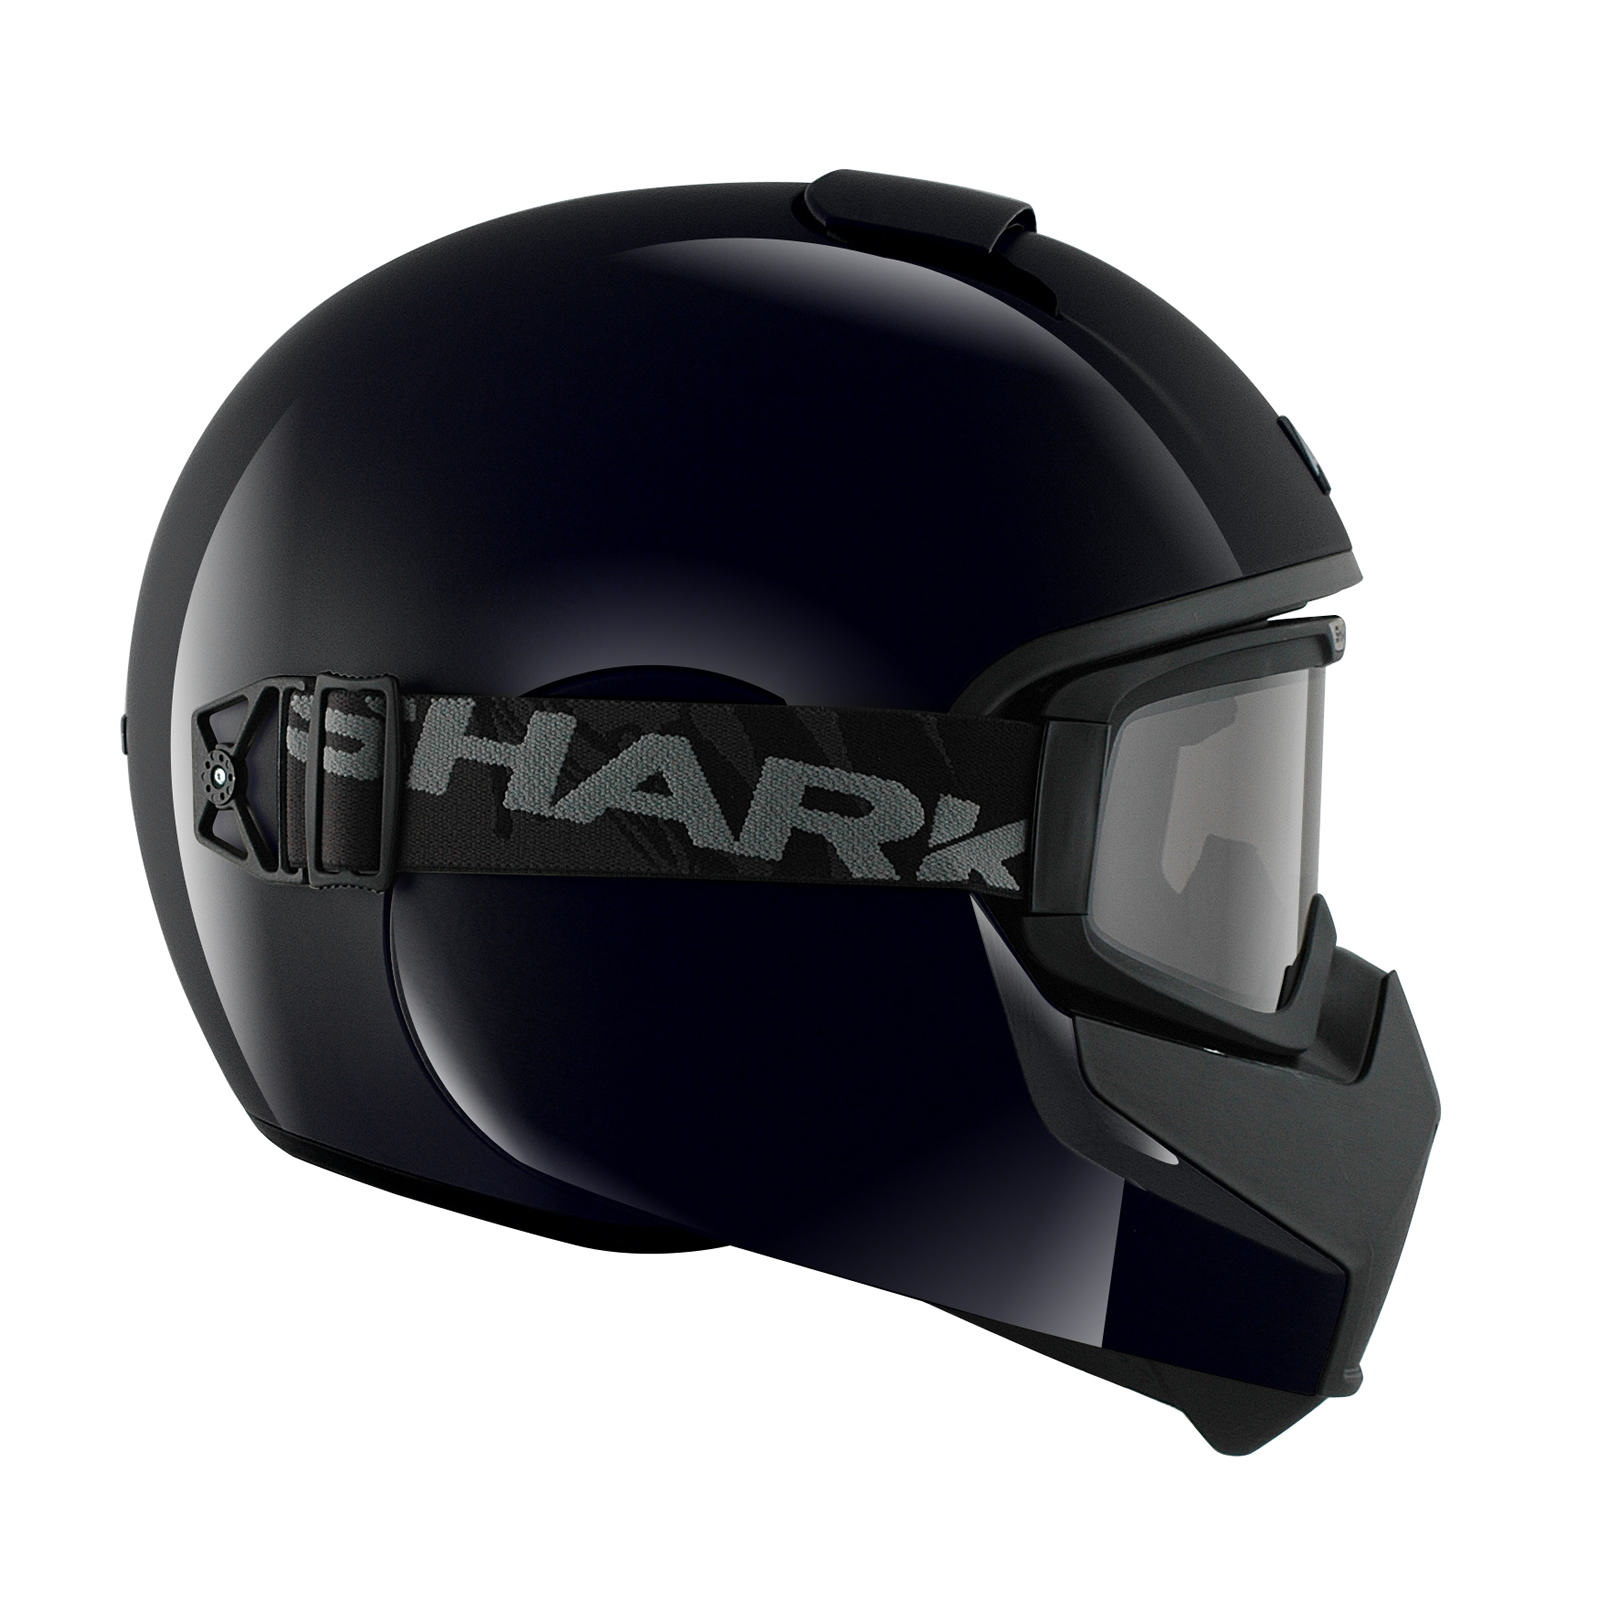 8d695bd4478ed Shark Vancore pianura nero casco da moto BLK URBAN STREET FIGHTER ...